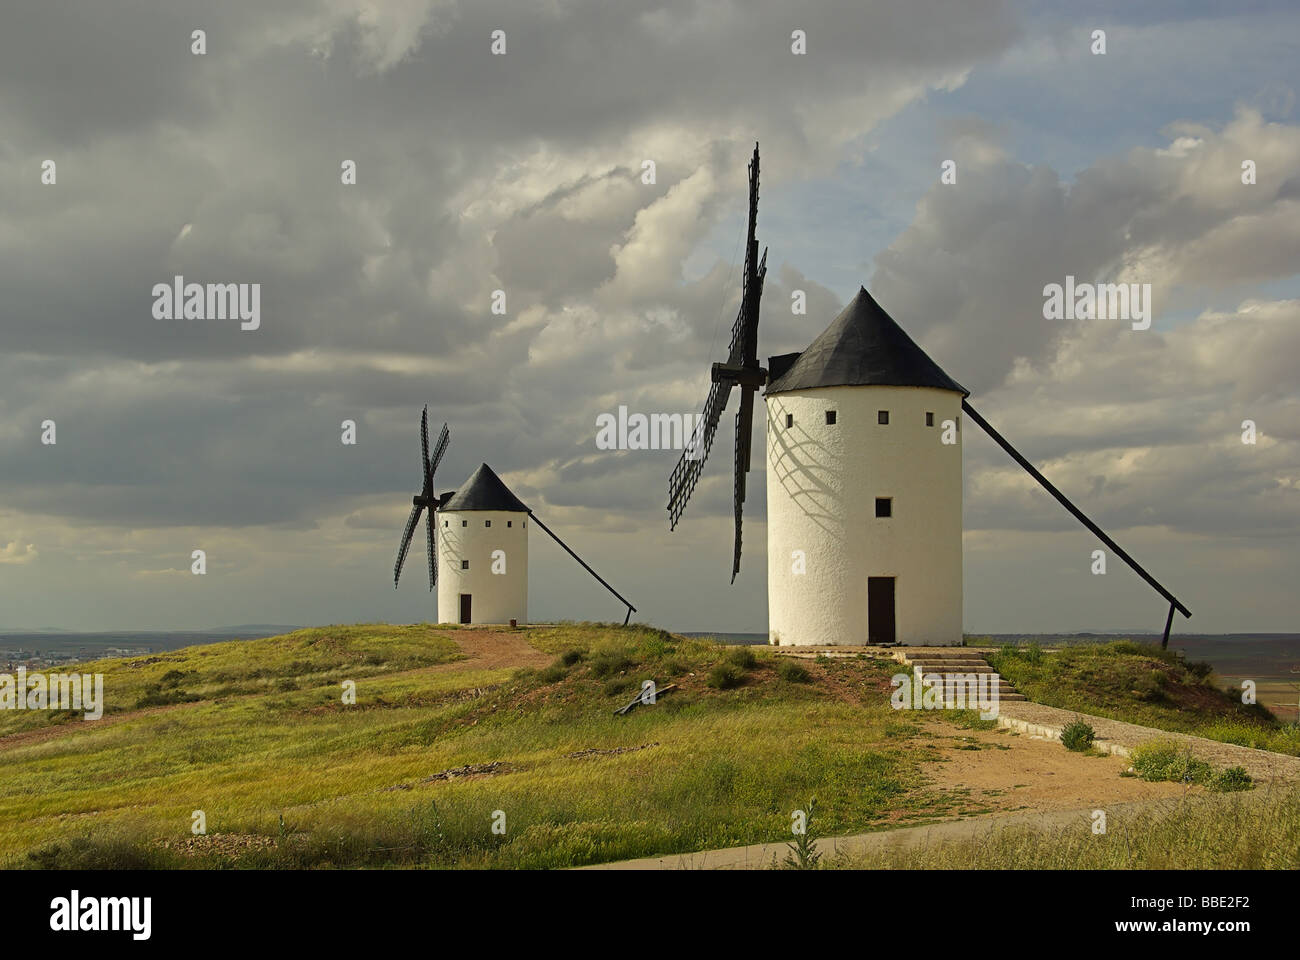 Alcazar Windmühle Alcazar windmill 06 Stock Photo